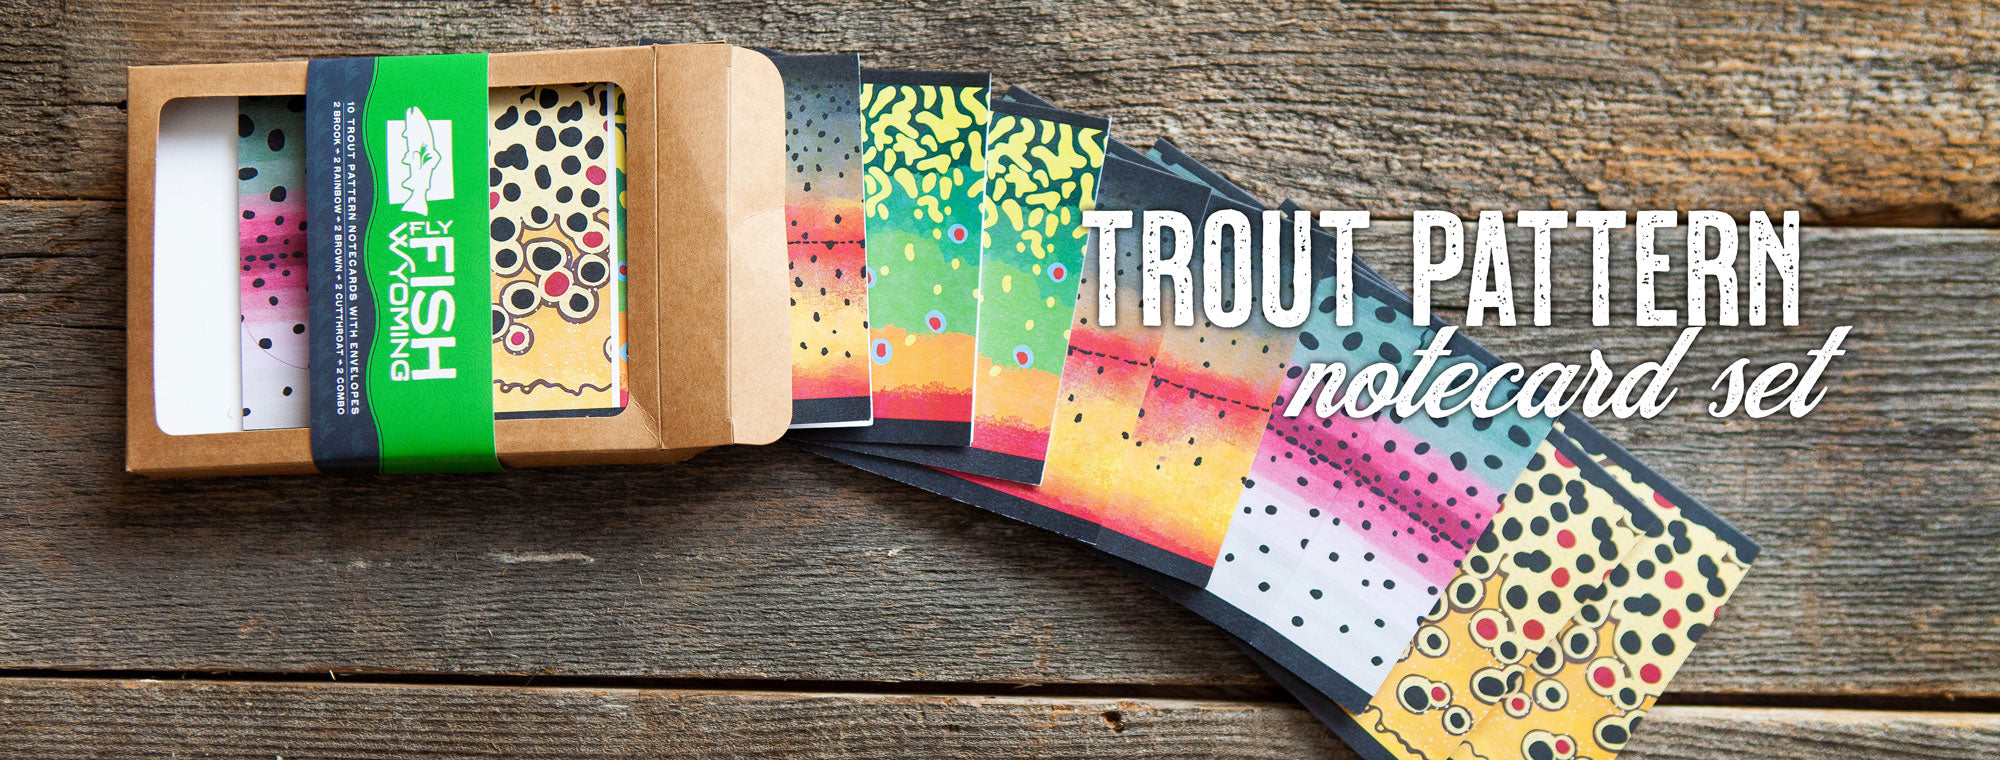 trout pattern notecards, fly fishing notecards, fly fishing gift